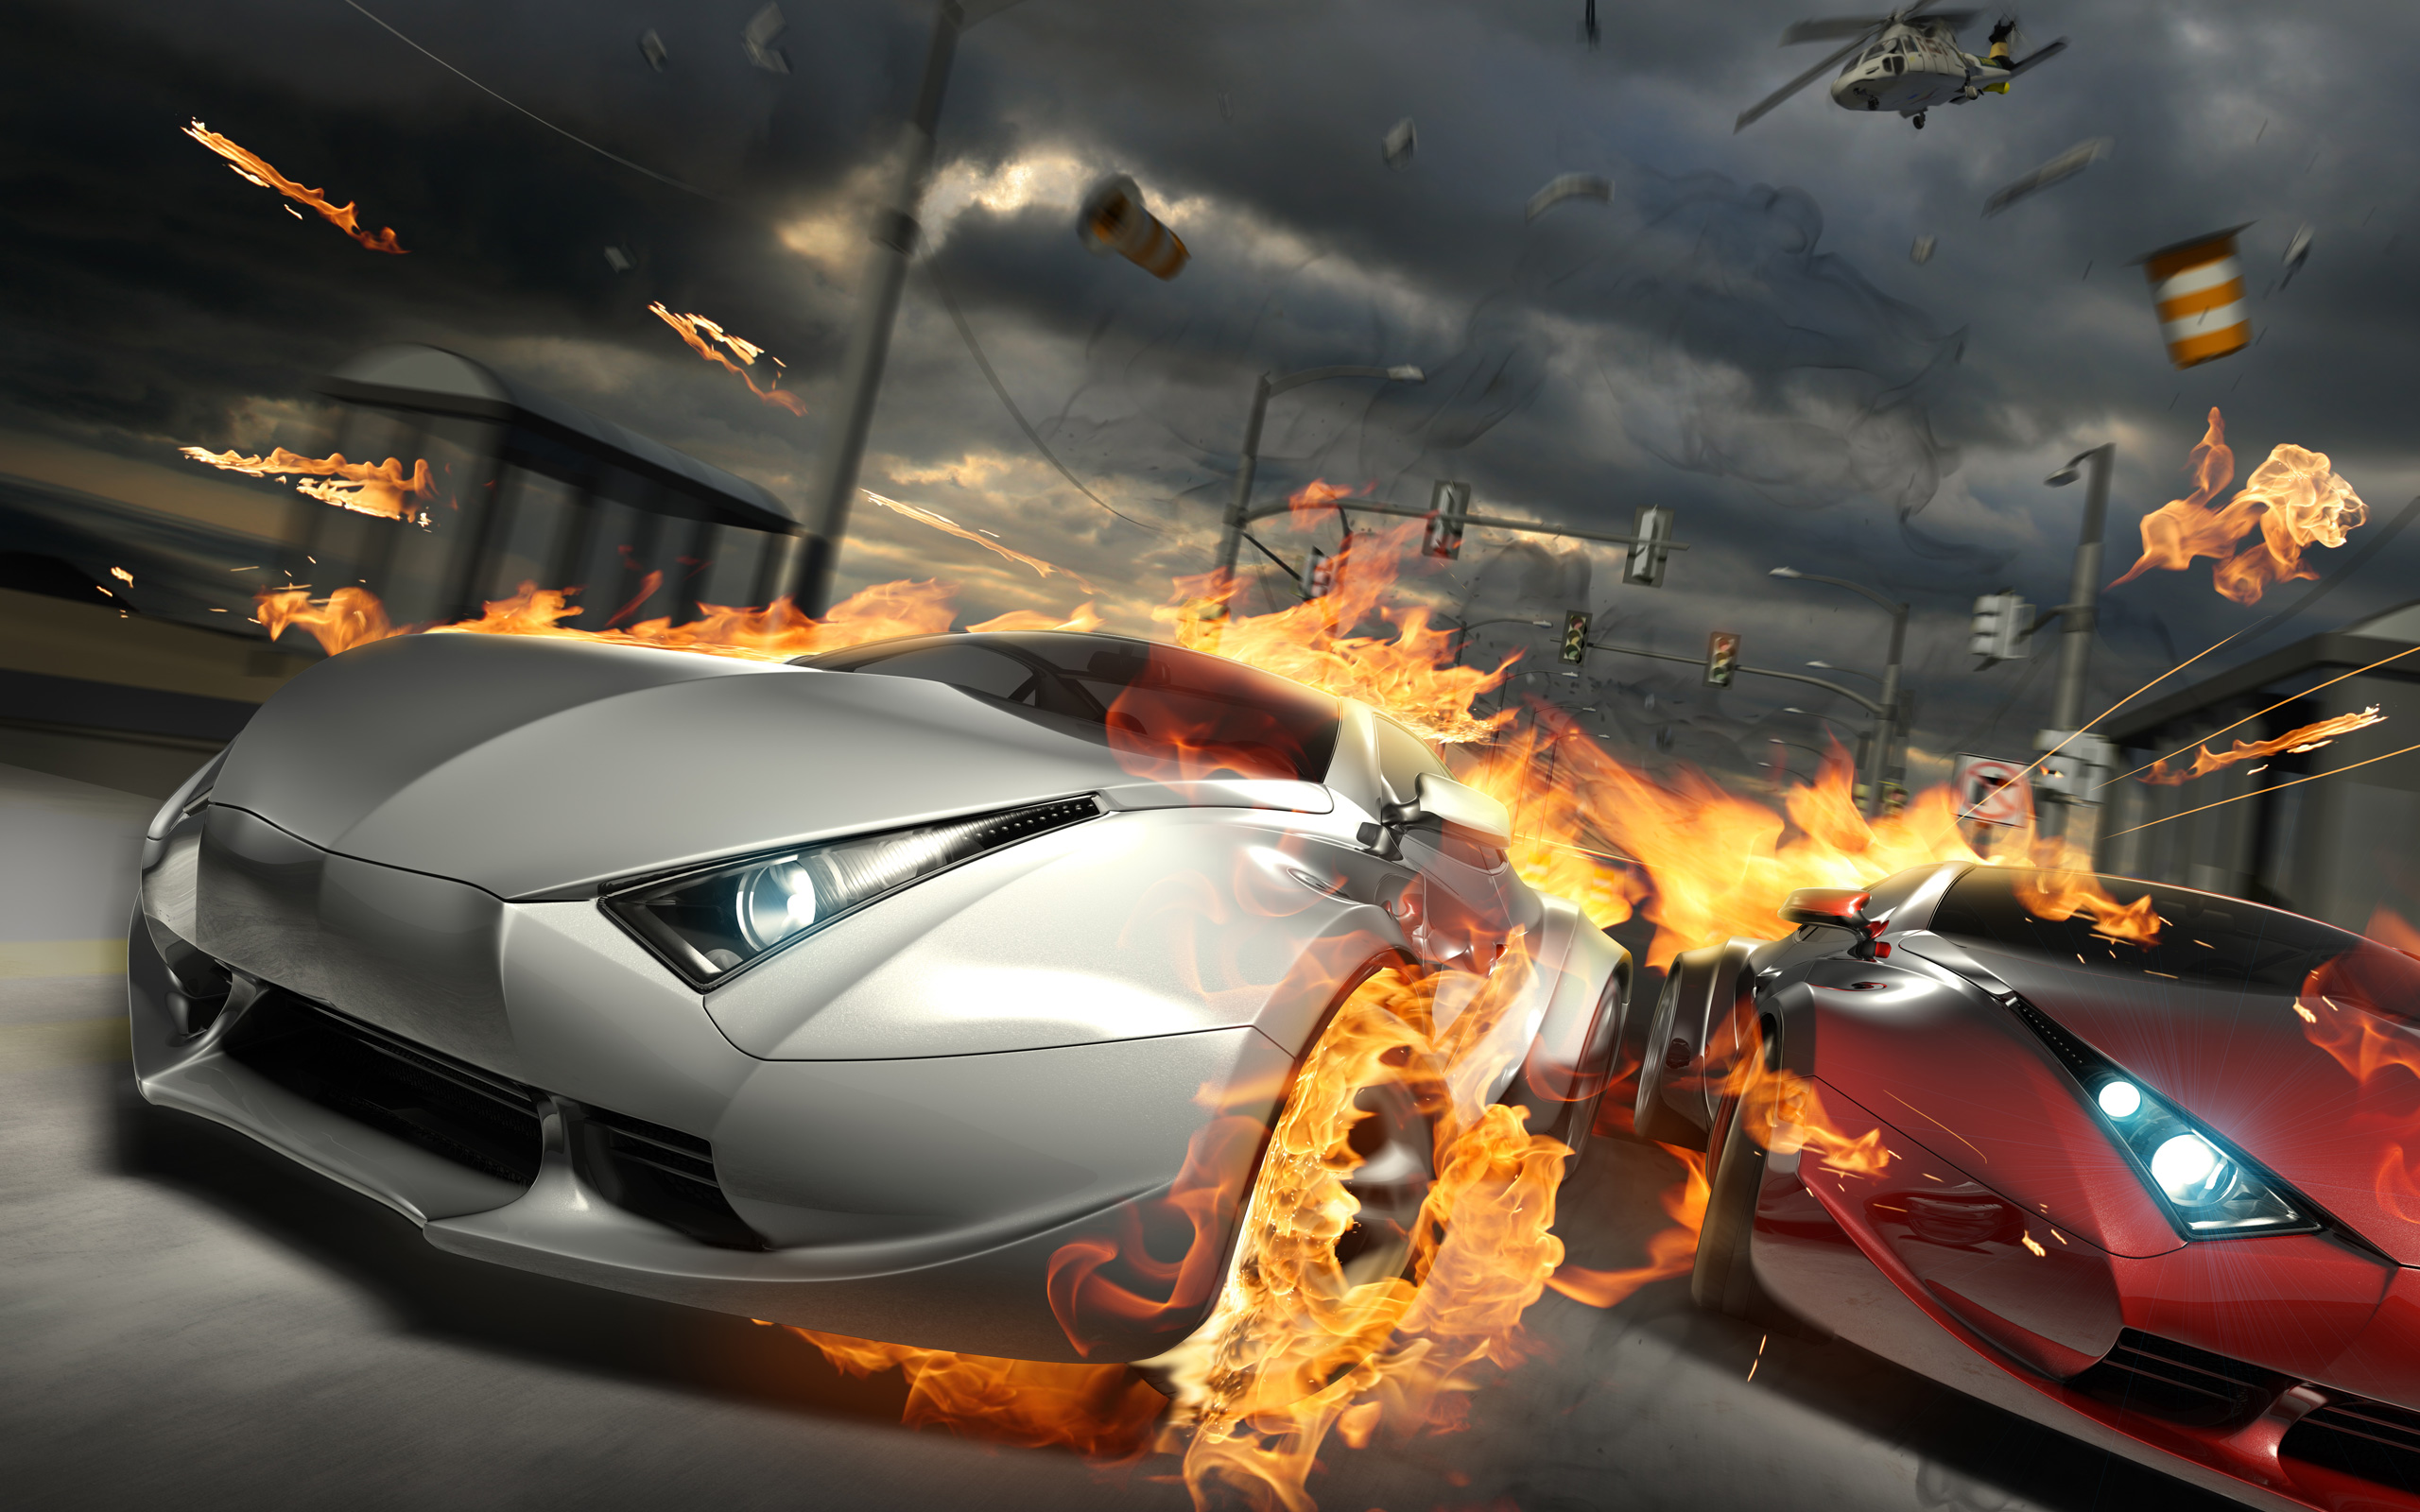 Destructive Car Race Wallpapers HD Wallpapers 2560x1600